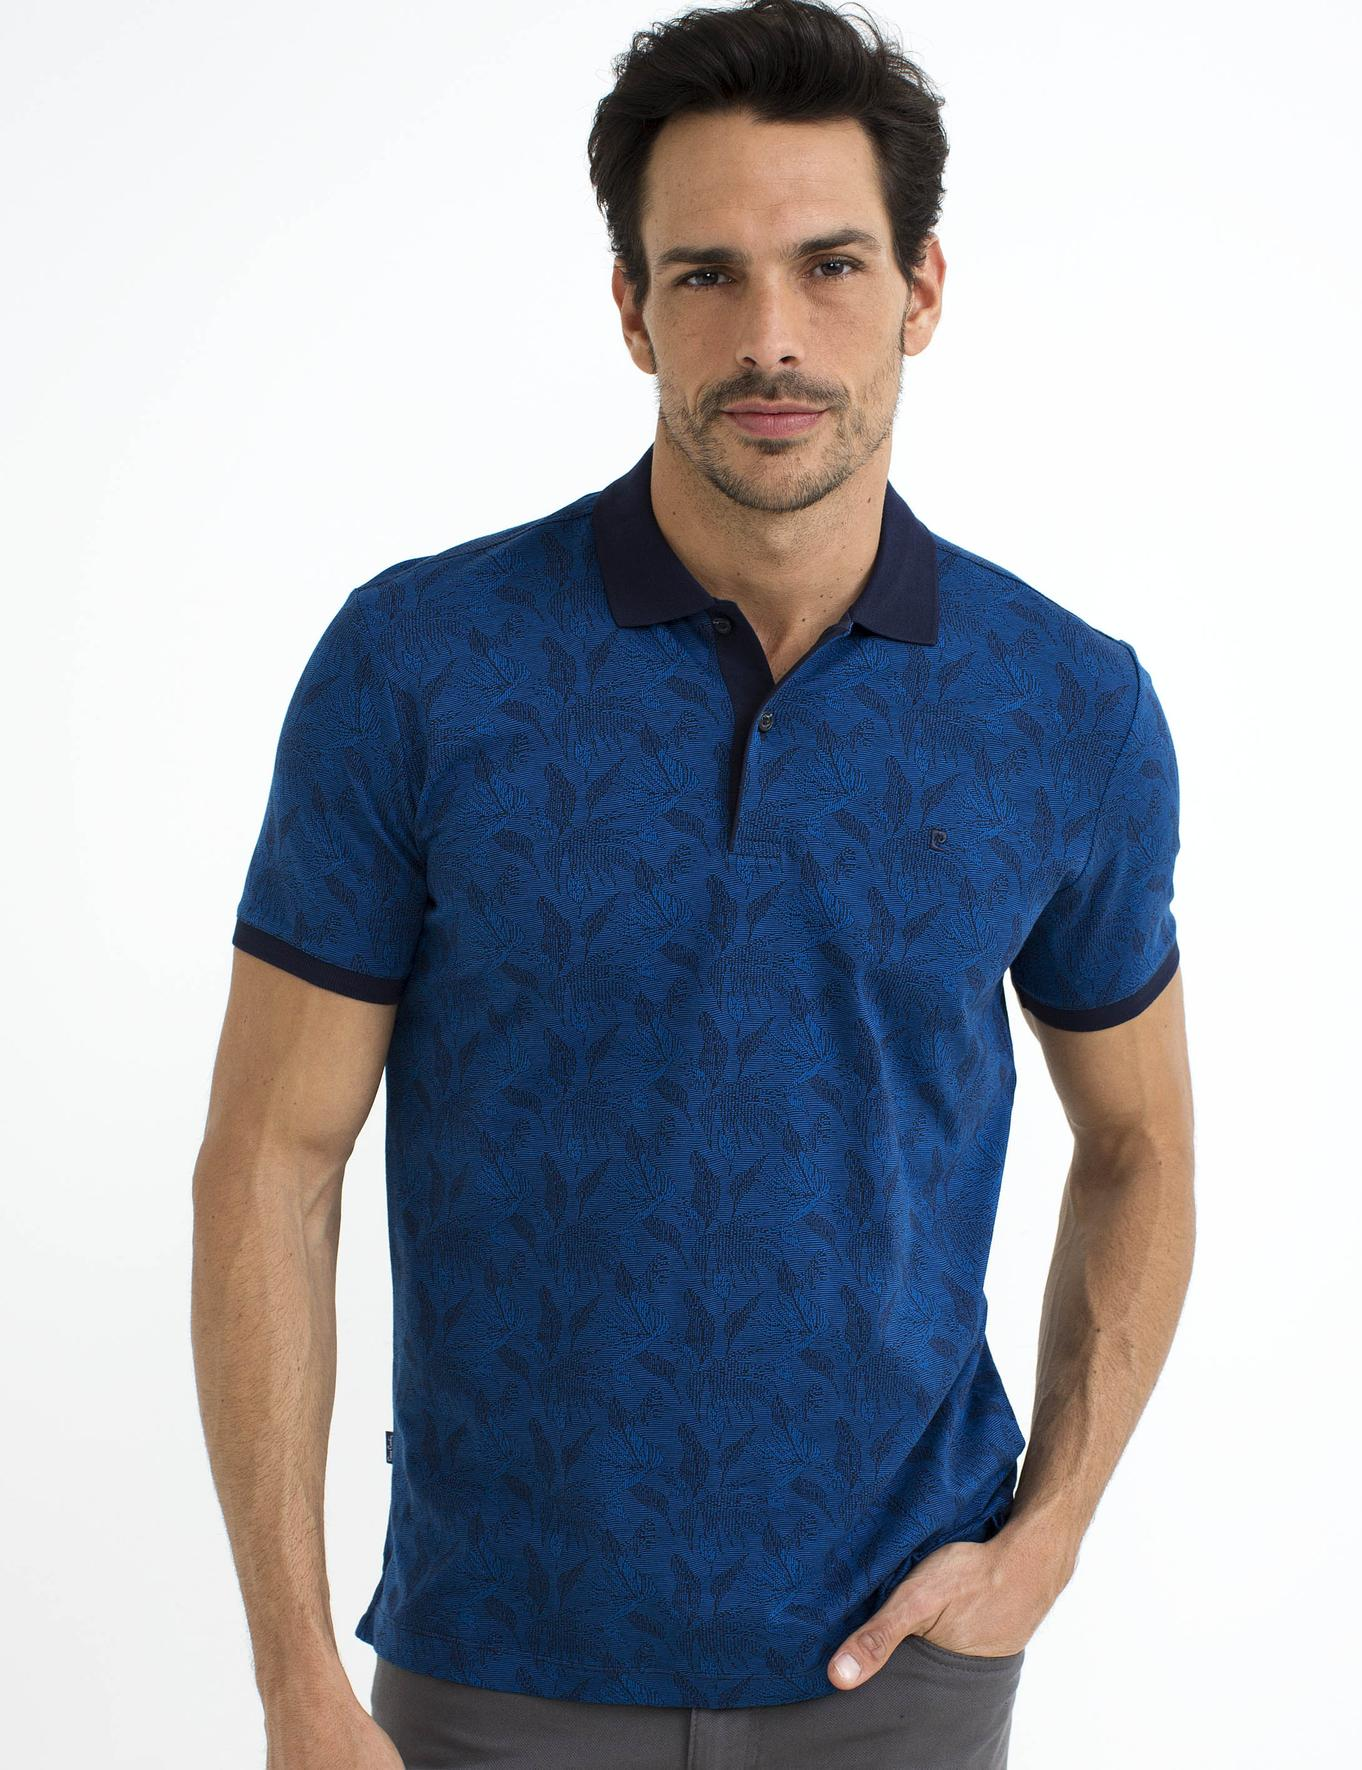 Mavi Slim Fit Polo Yaka T-Shirt